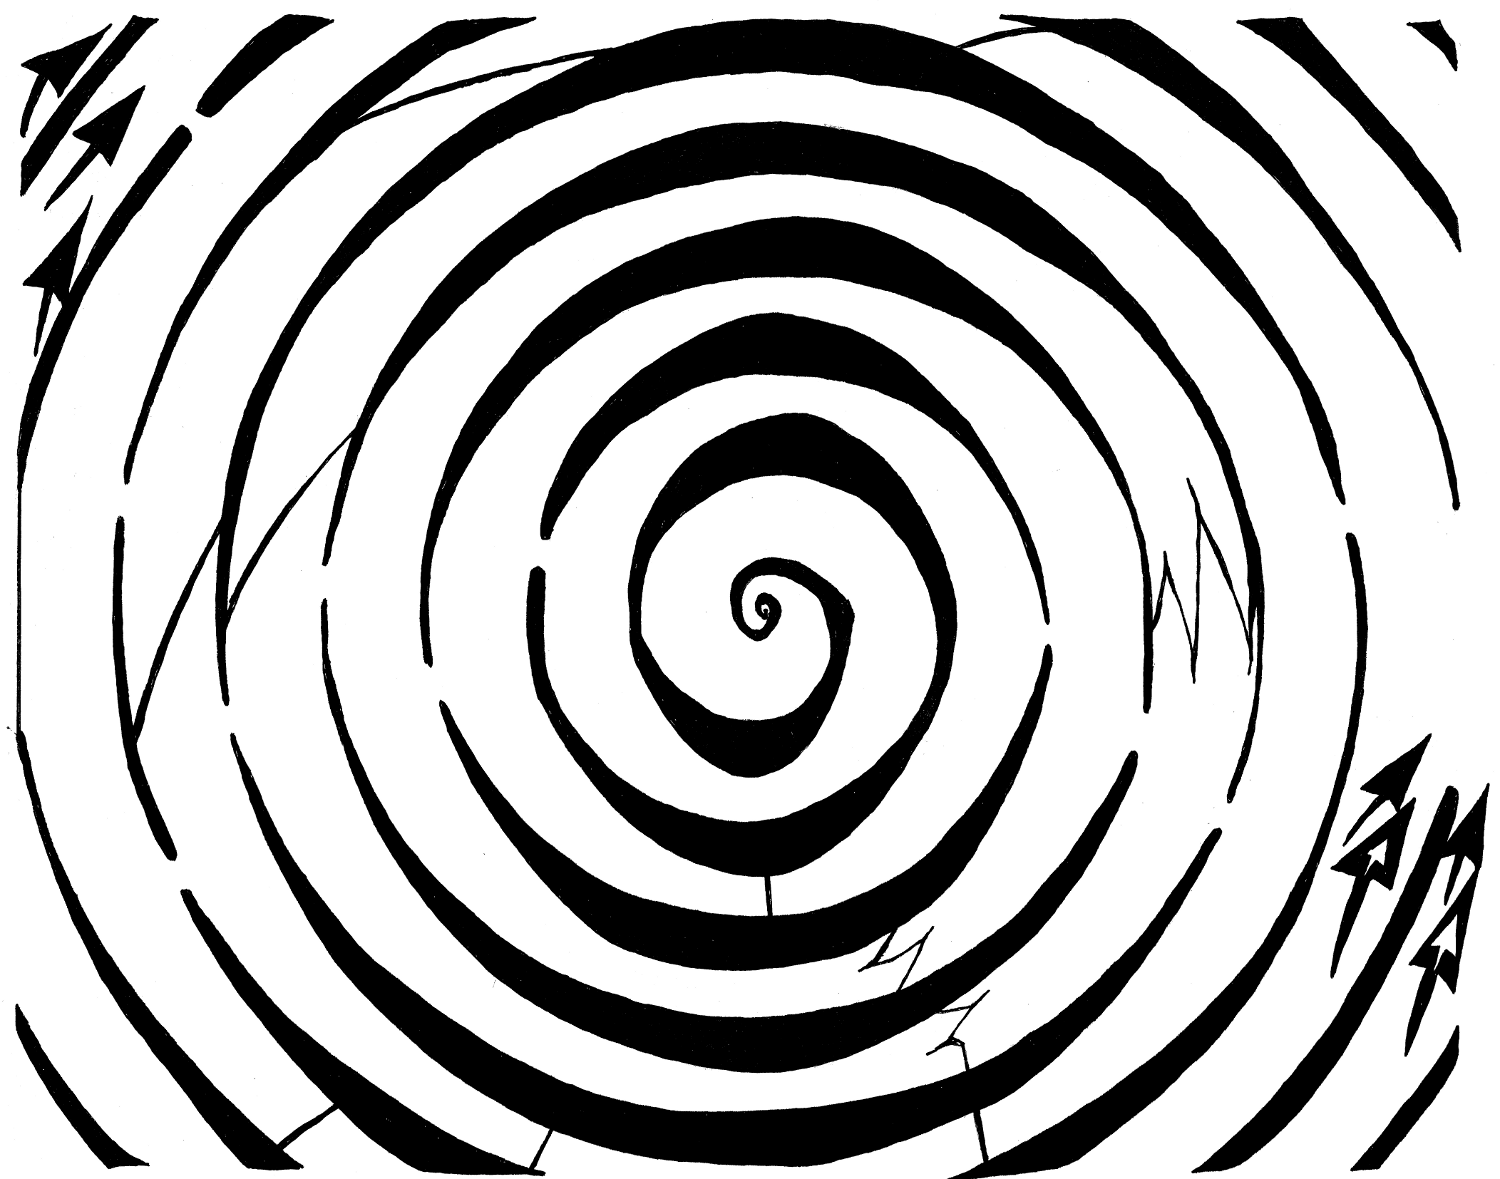 Drawn maze spiral And  Dopler art Mazes